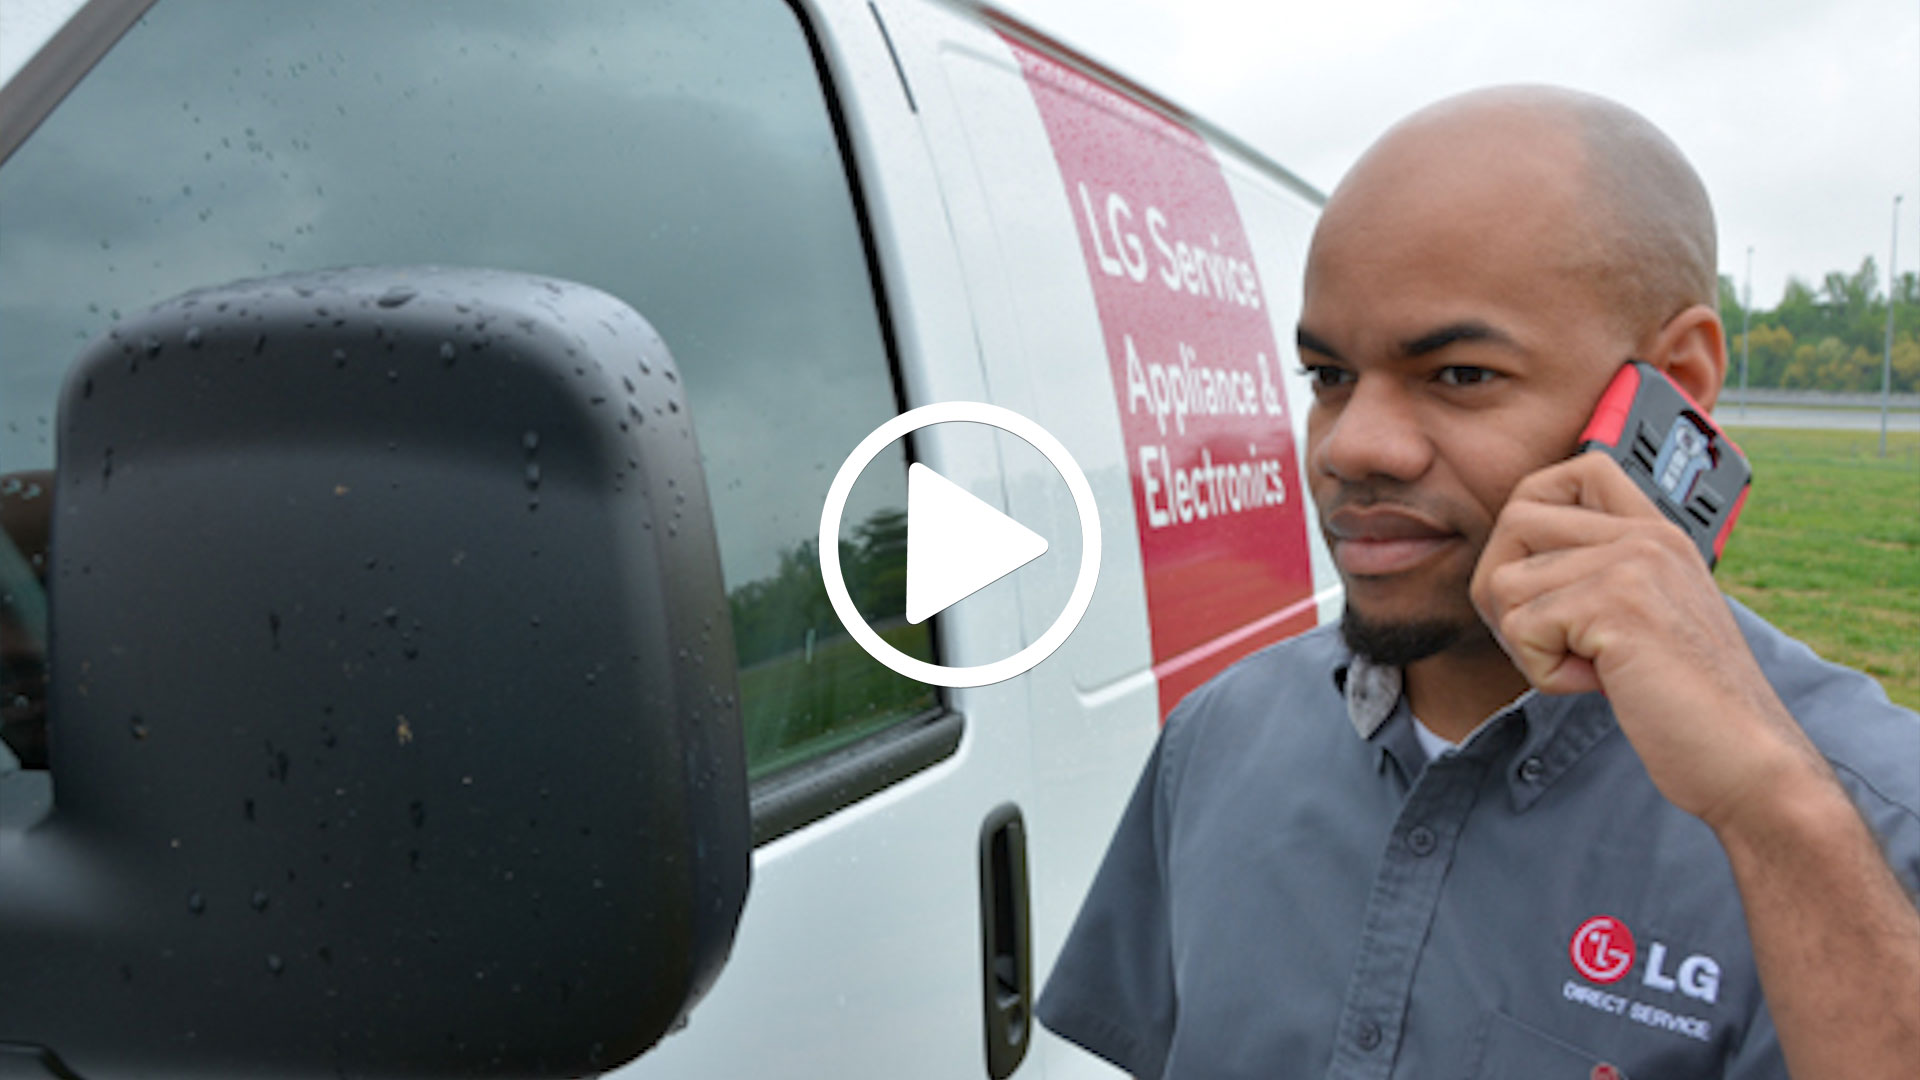 Watch our careers video for available job opening Field Service Technician in Phoenix, AZ